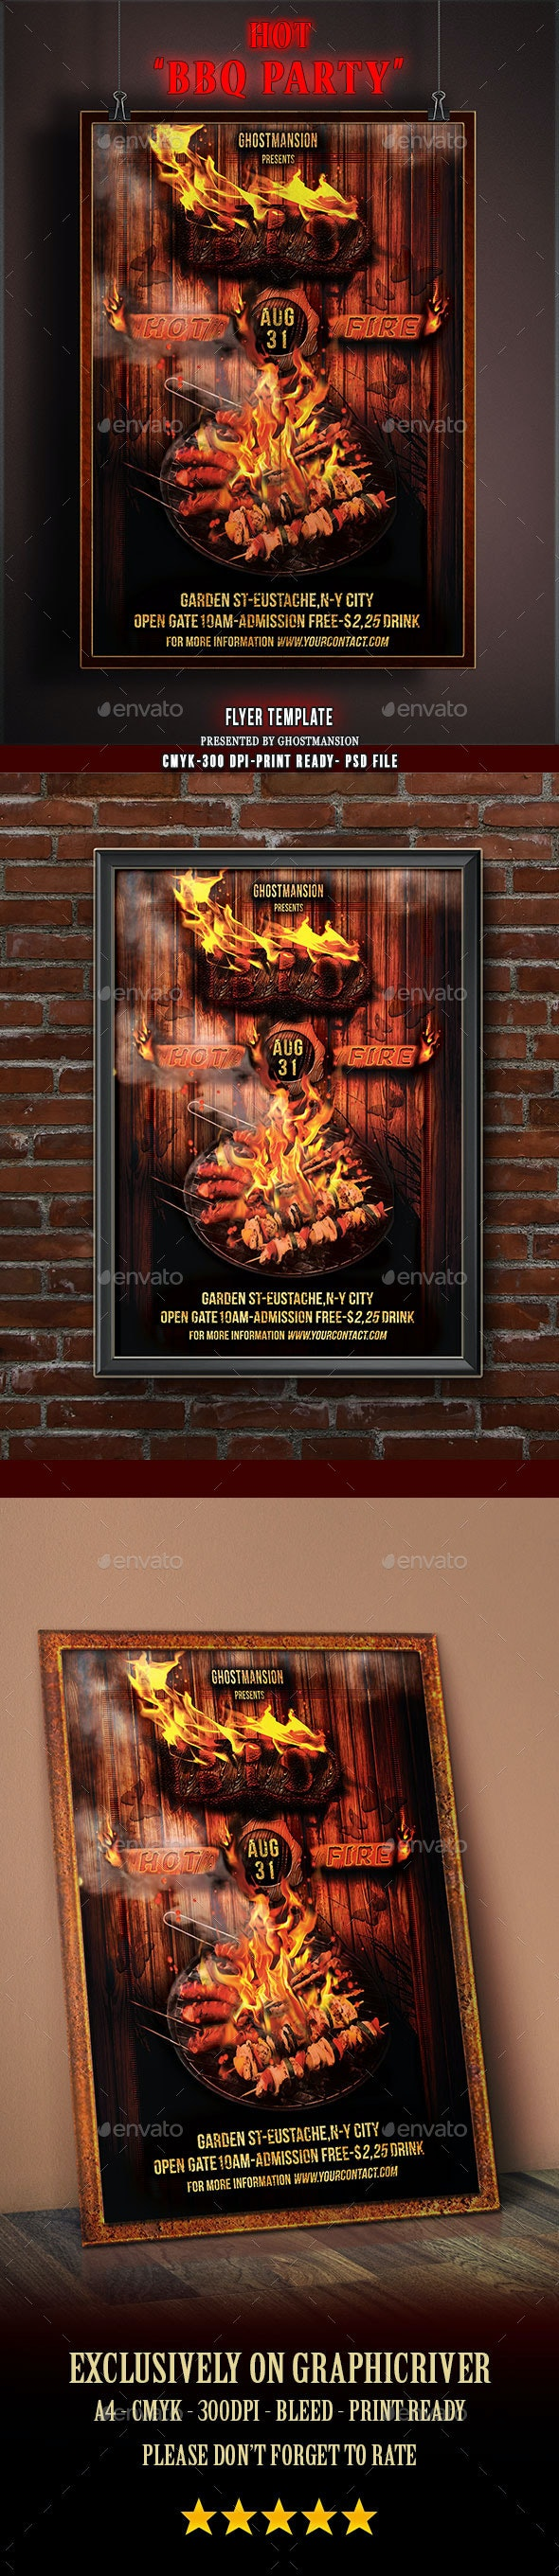 BBQ Party Flyer Template V2 - Holidays Events